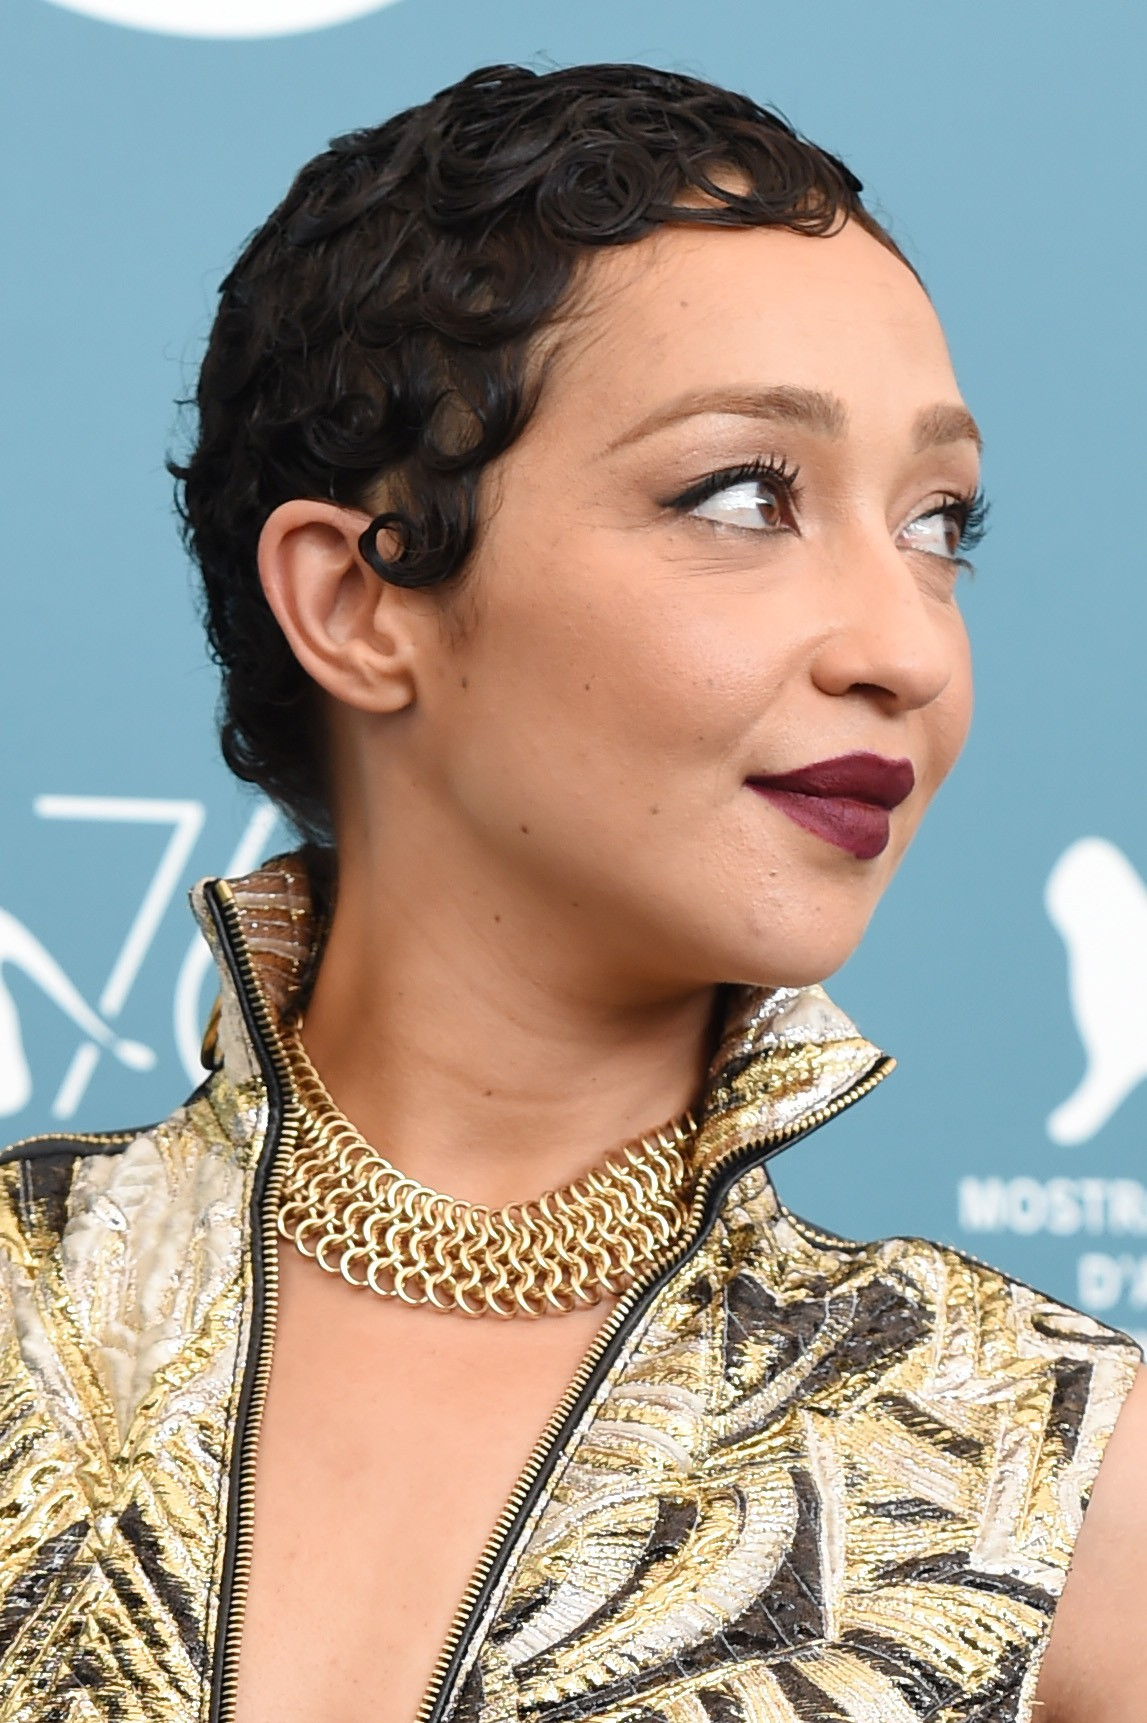 Ruth Negga durante o Festival de Cinema de Veneza 2019 (Foto: Getty Images)